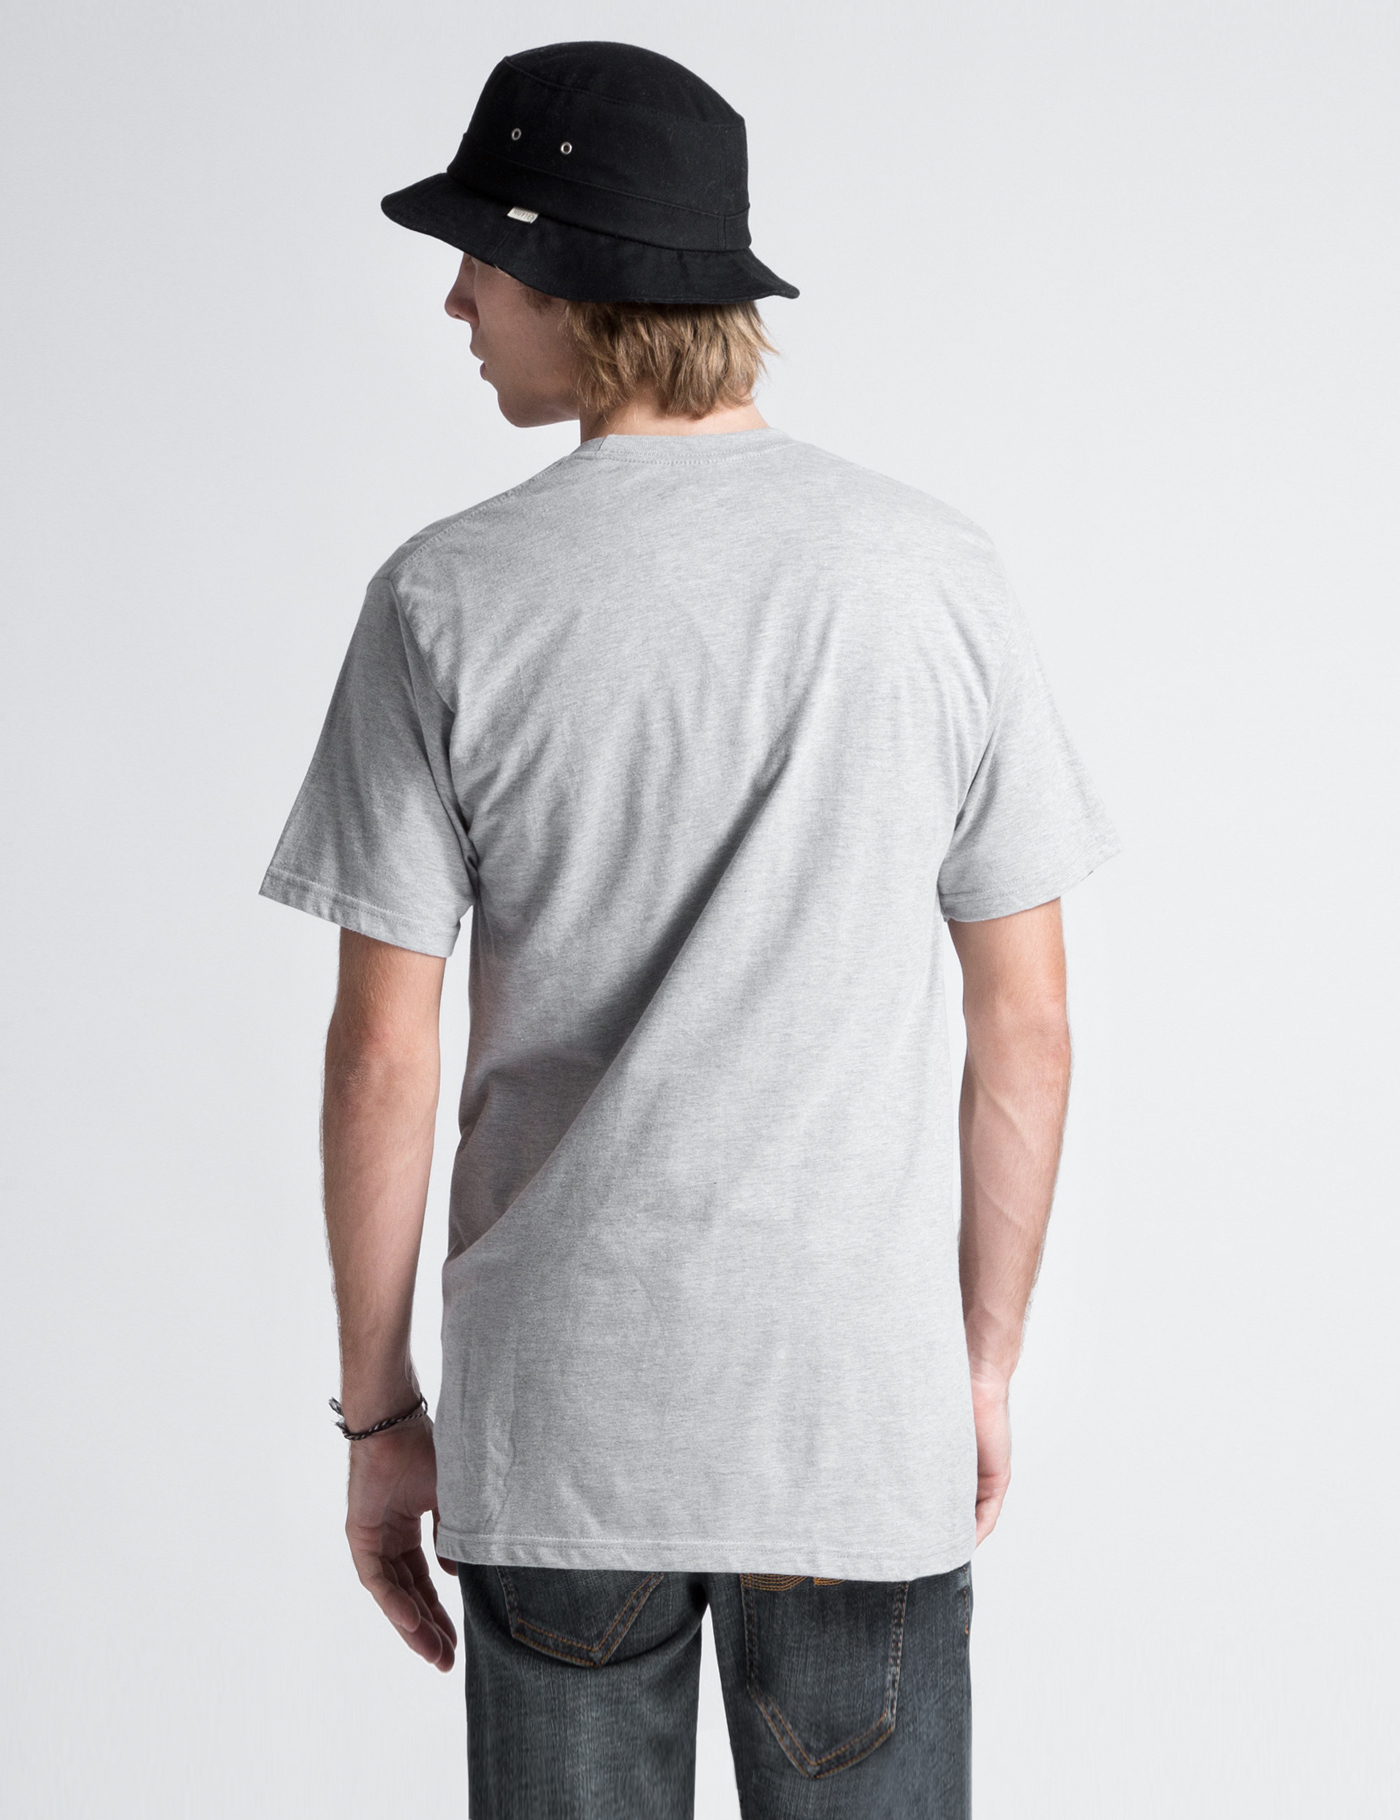 Stussy heather grey stock t shirt in gray for men grey Mens heather grey t shirt